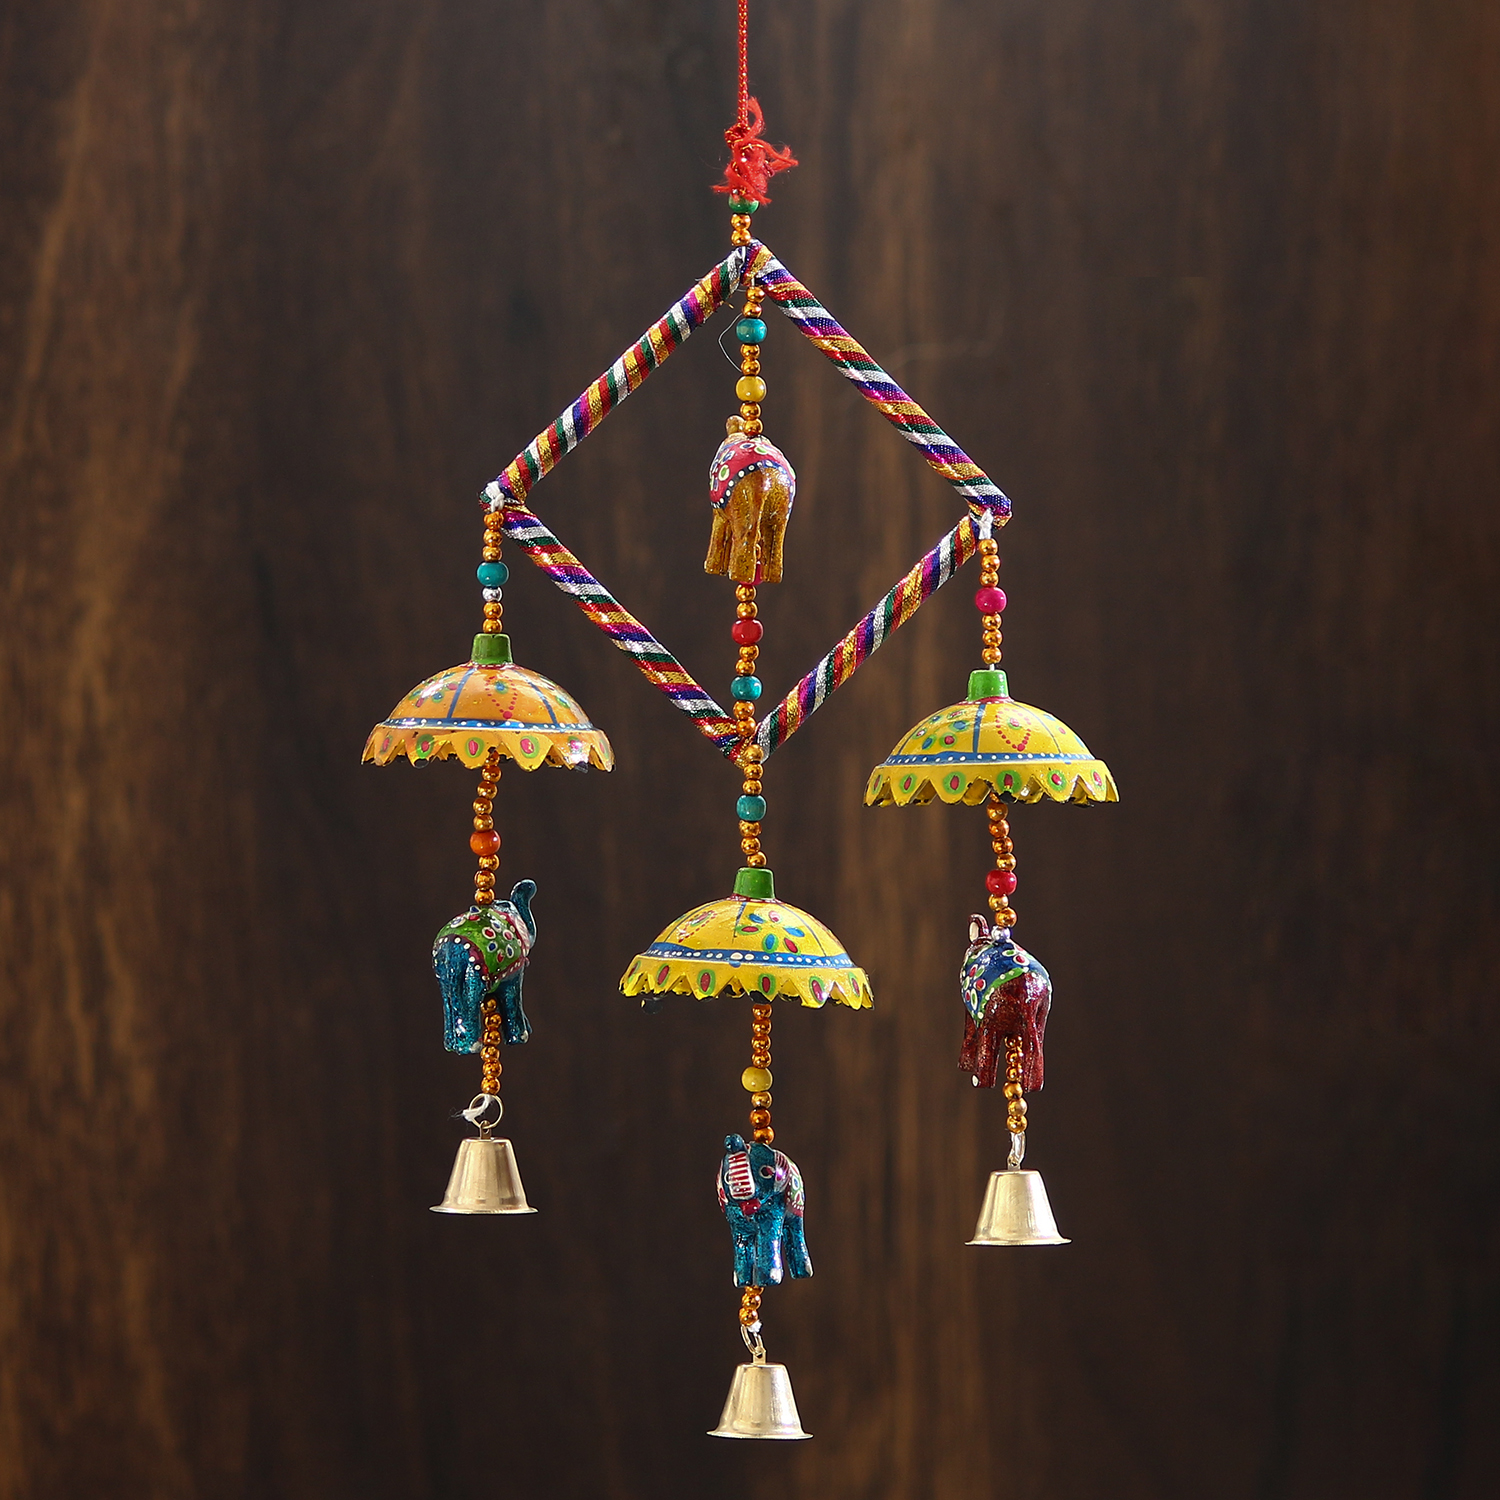 Handcrafted Decorative Elephant with Chatri Wall/Door/Window Hanging Bells Indian Home Decor